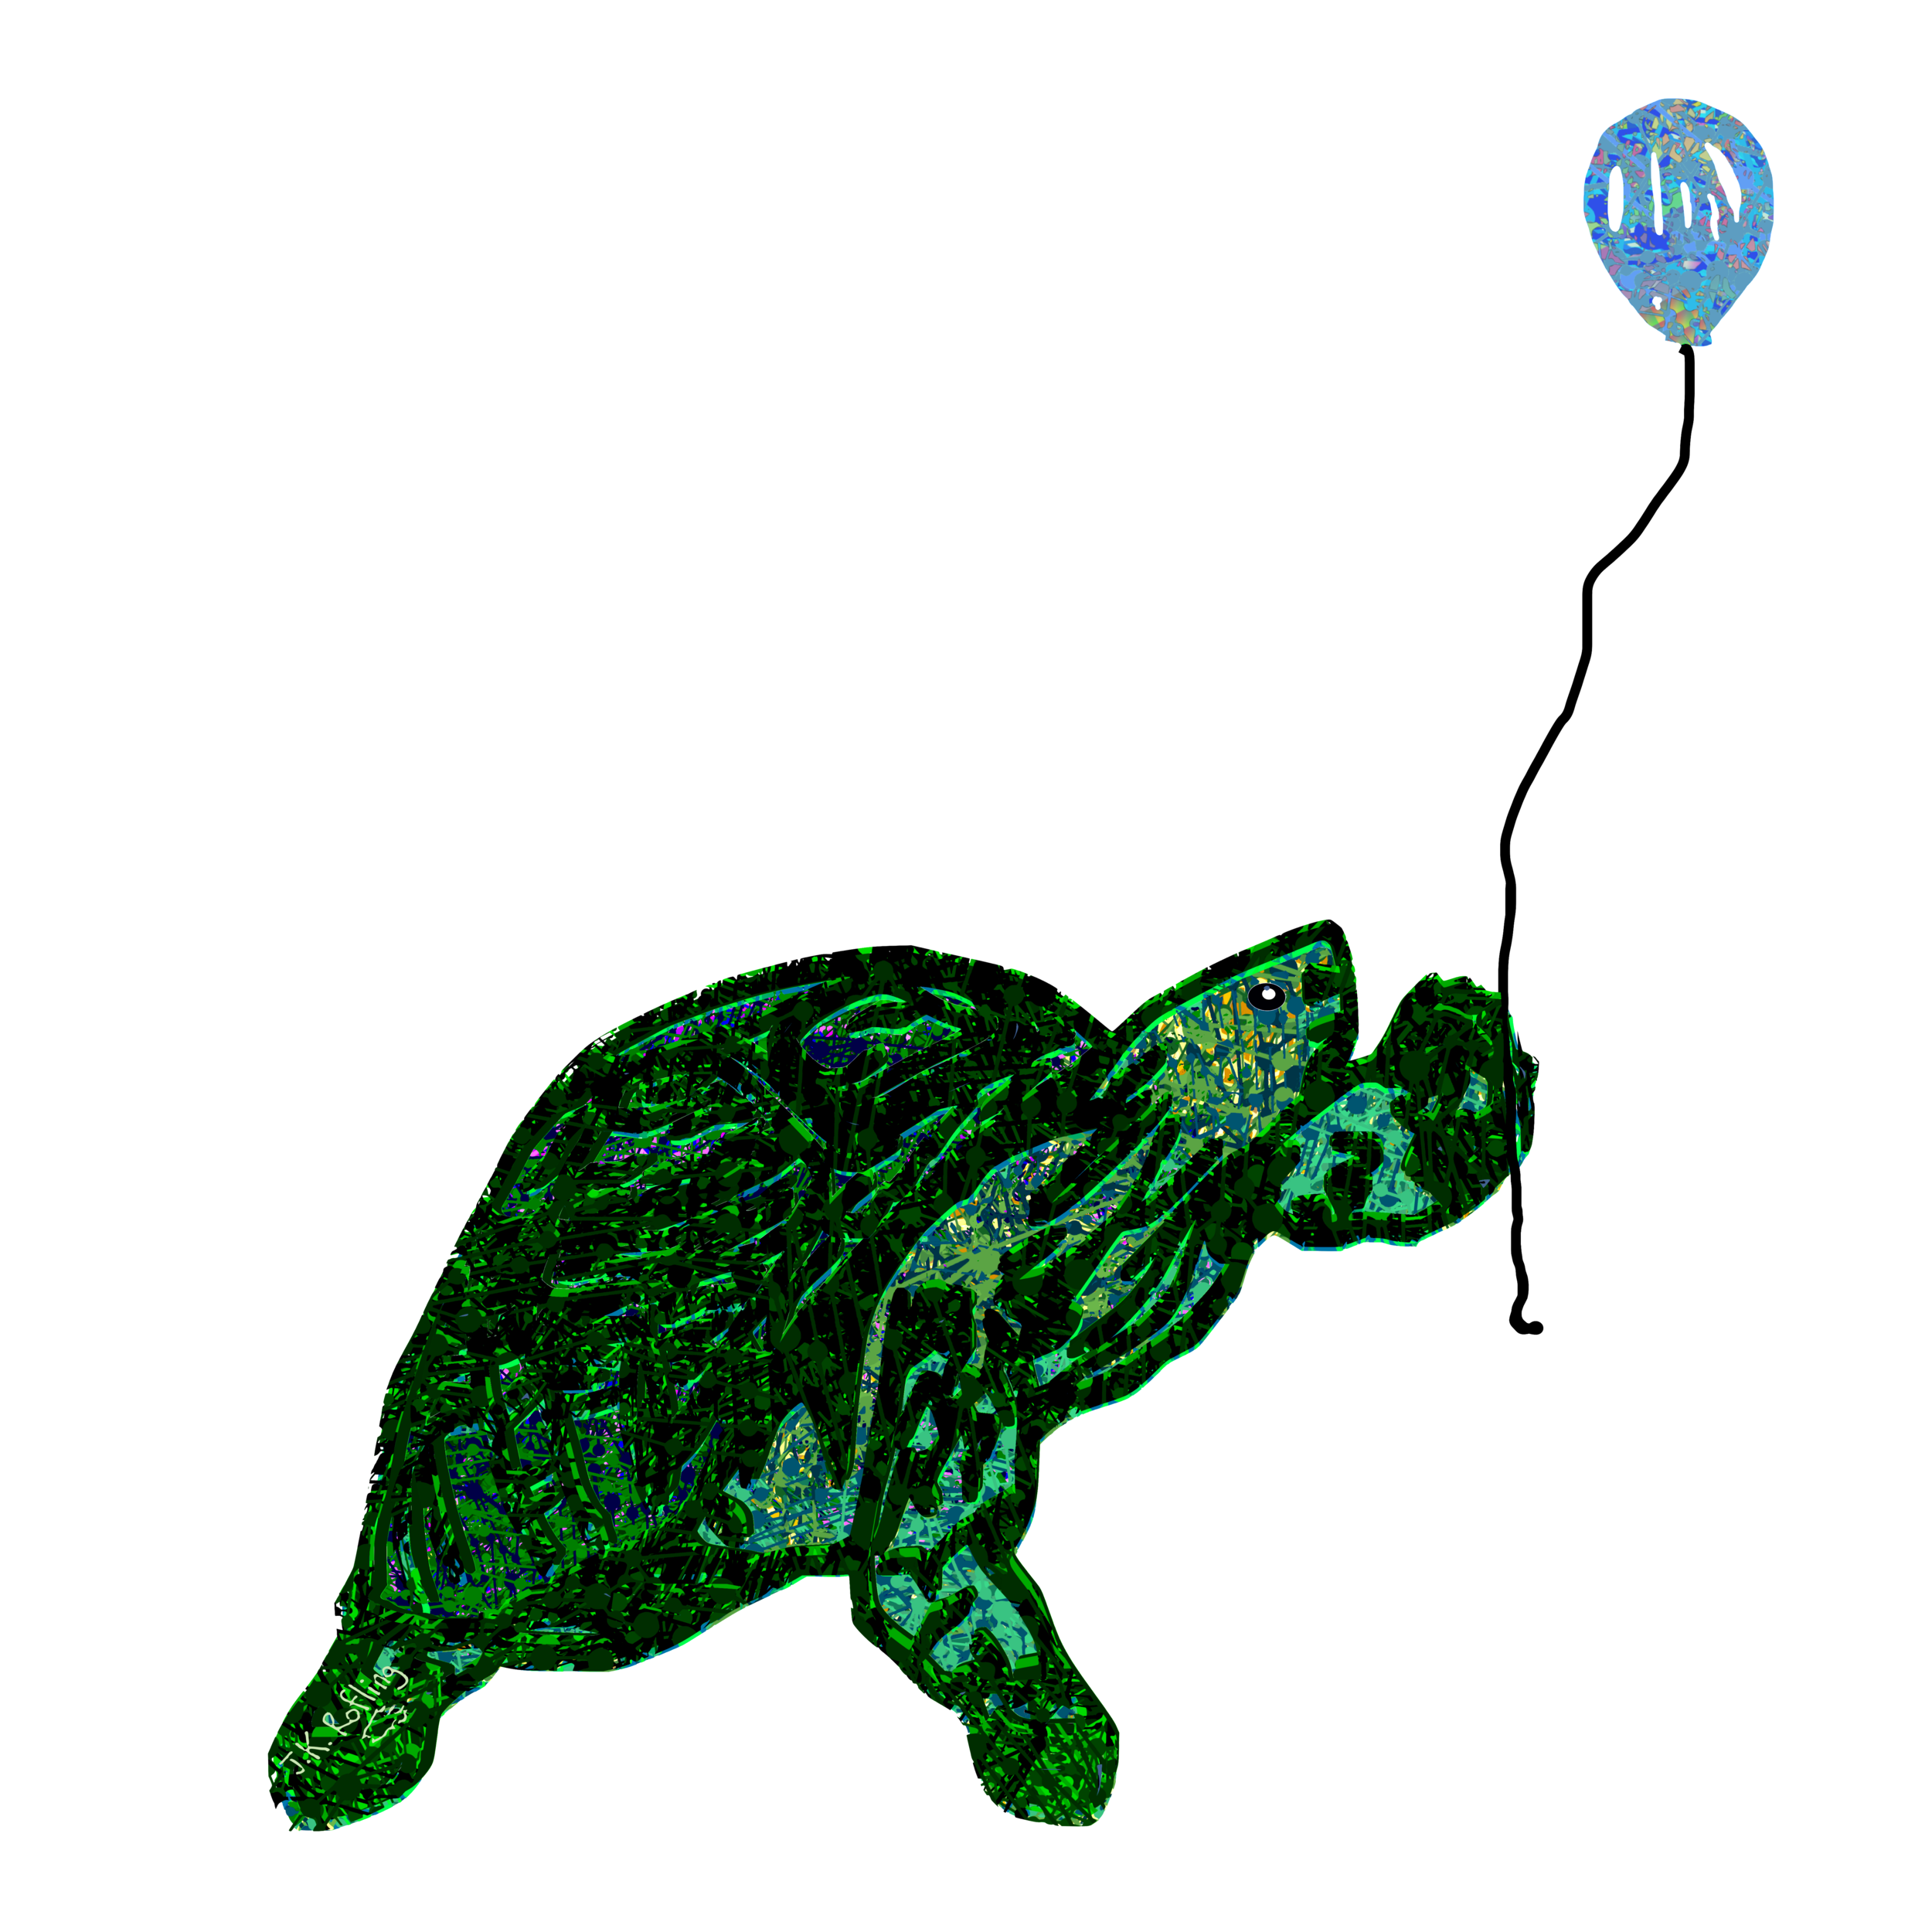 the Turtle0.png